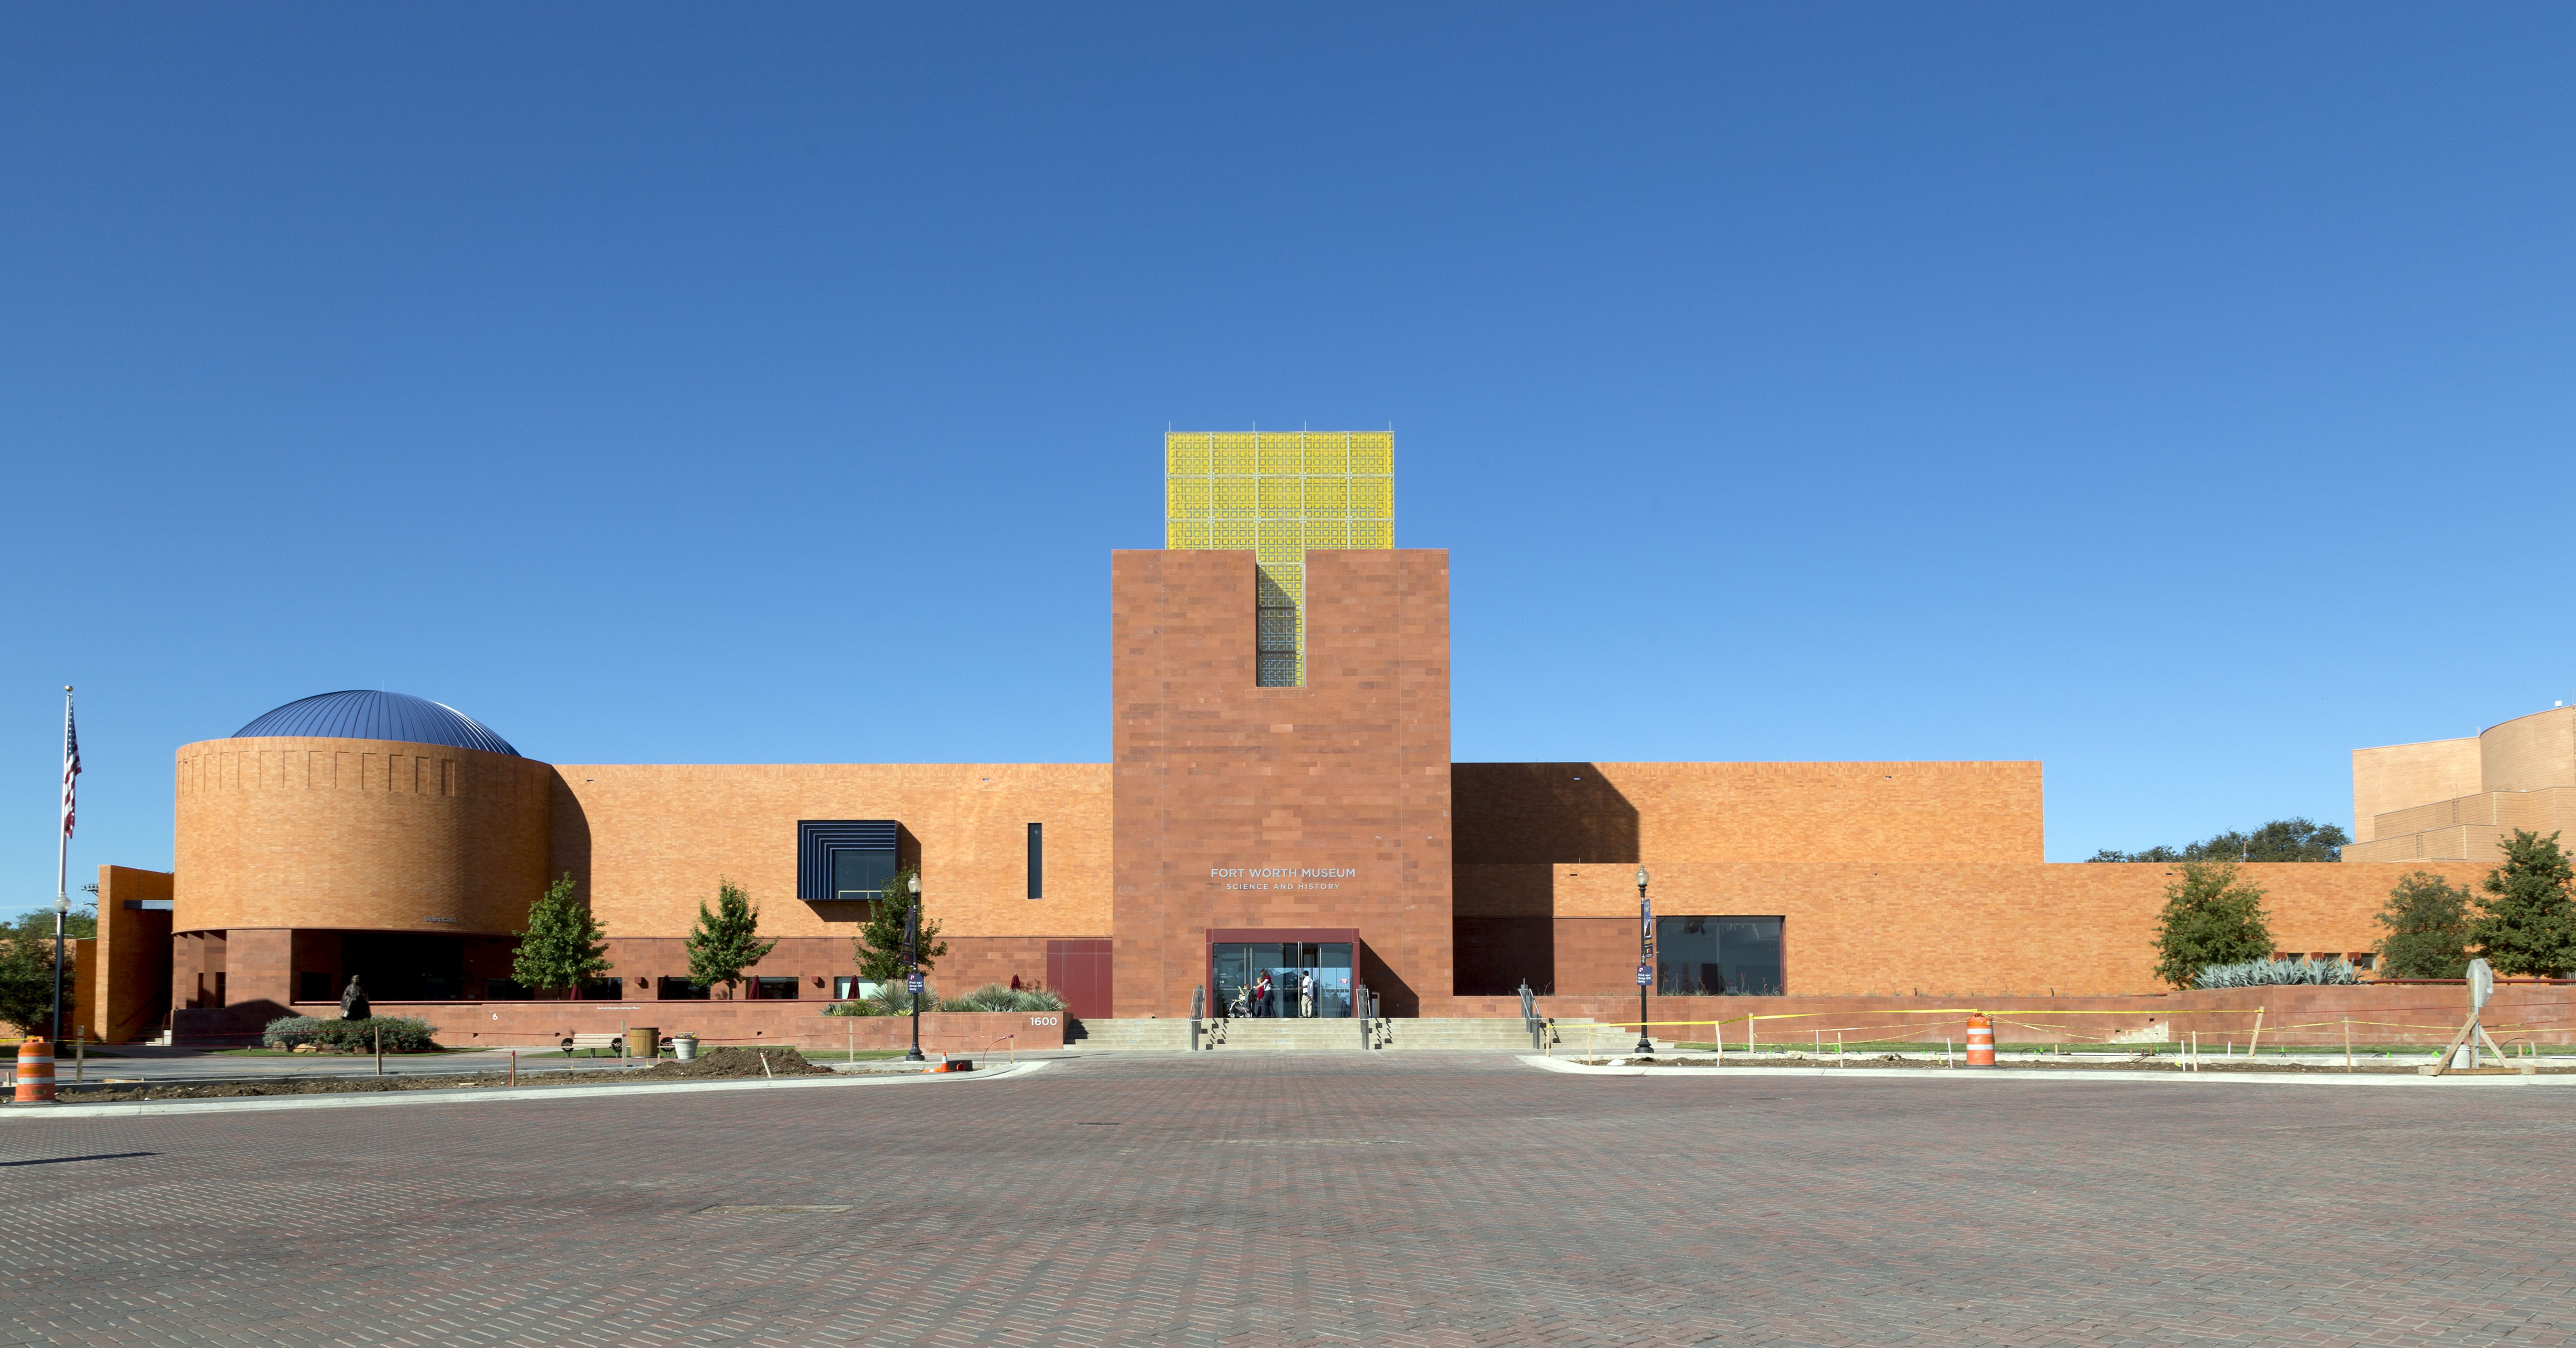 The Fort Worth Museum of Science and History, in Fort Worth, Texas